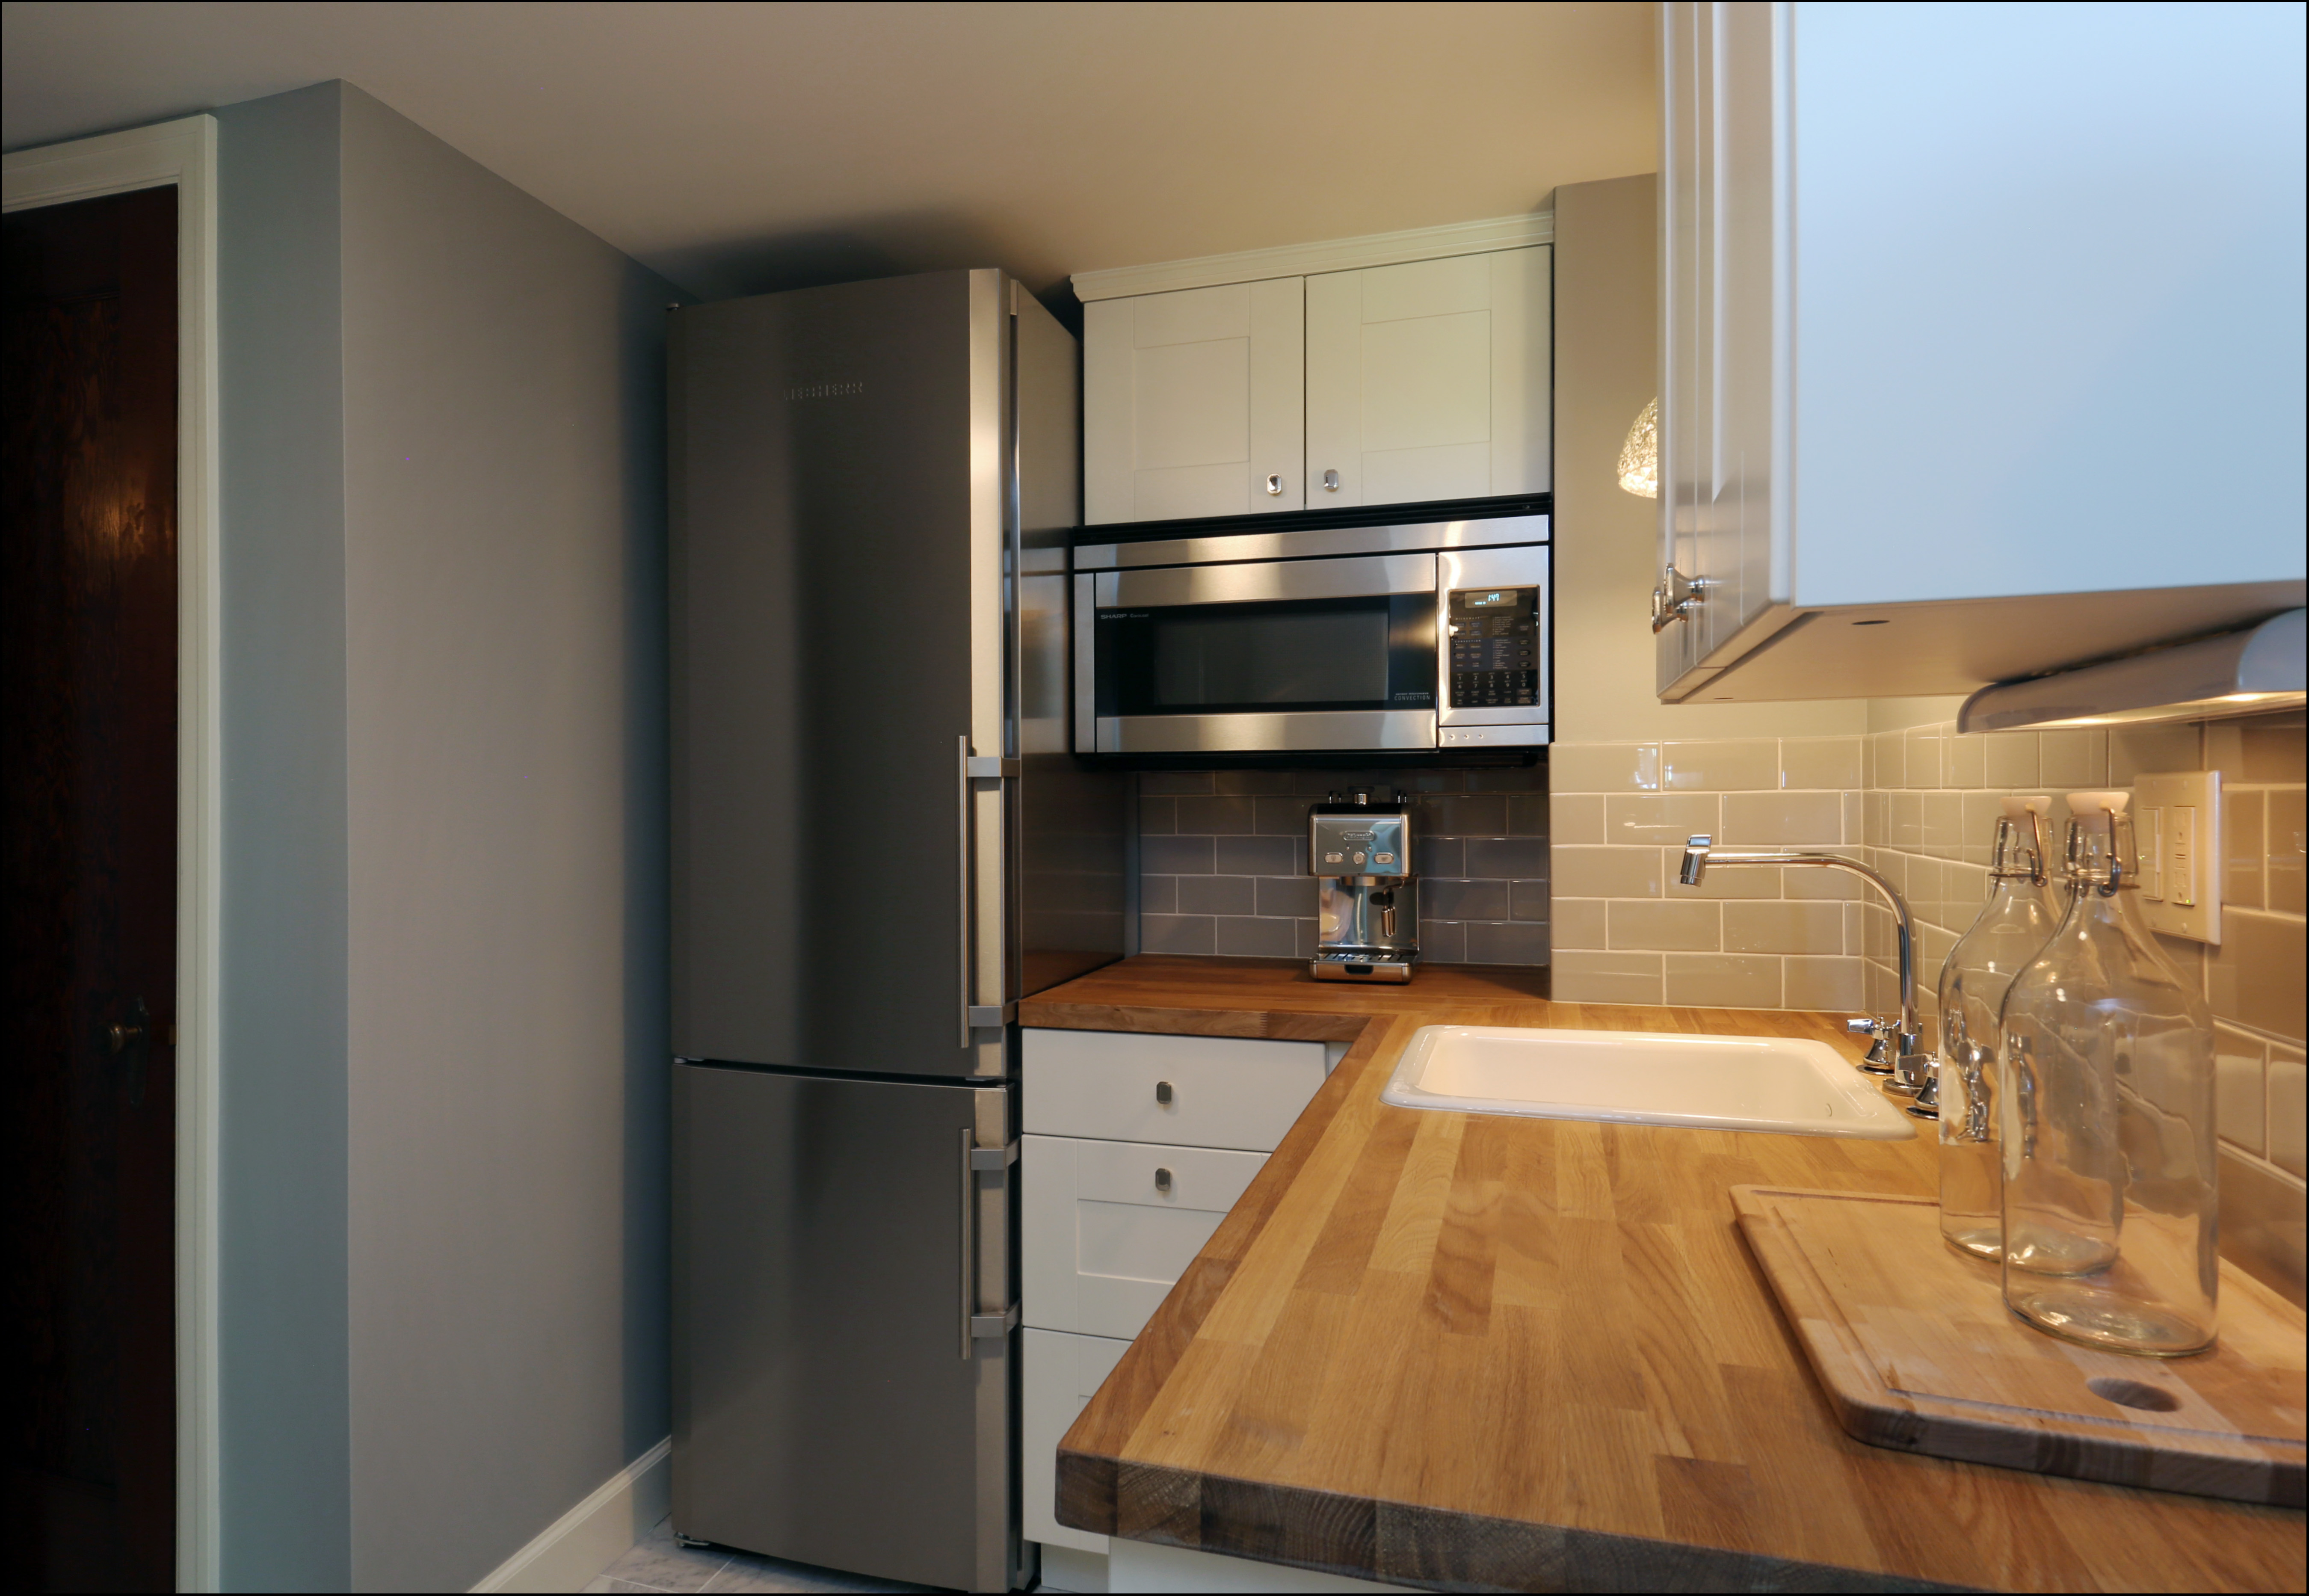 How To Make The Best Of Your Kitchenette: Inside Arciform